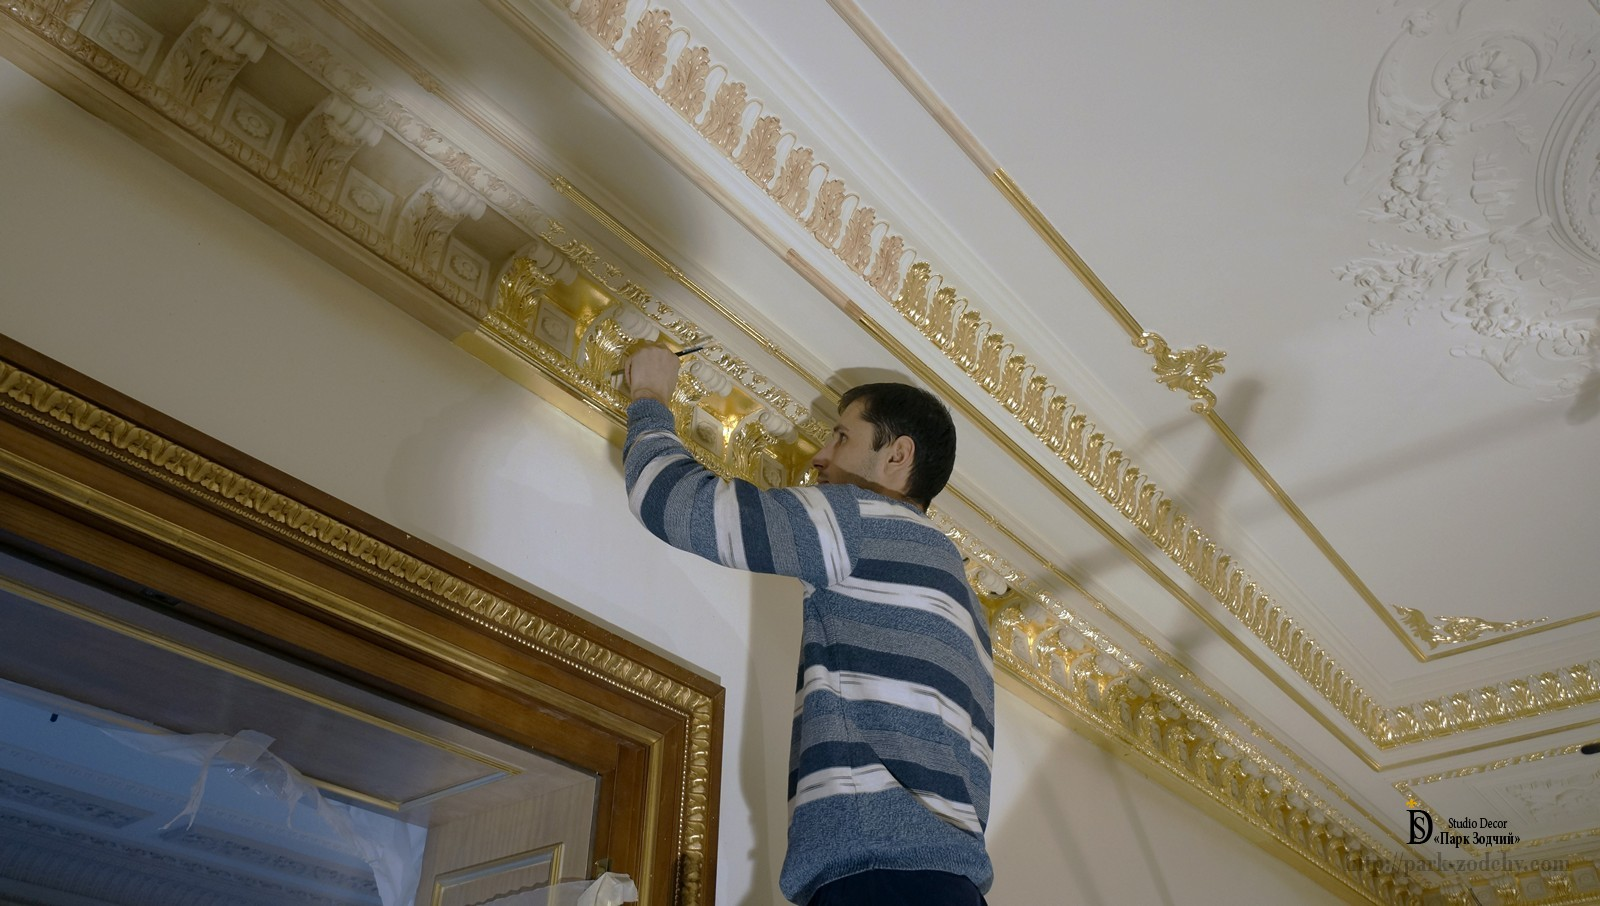 Gilding moduleno and cornice in the interior